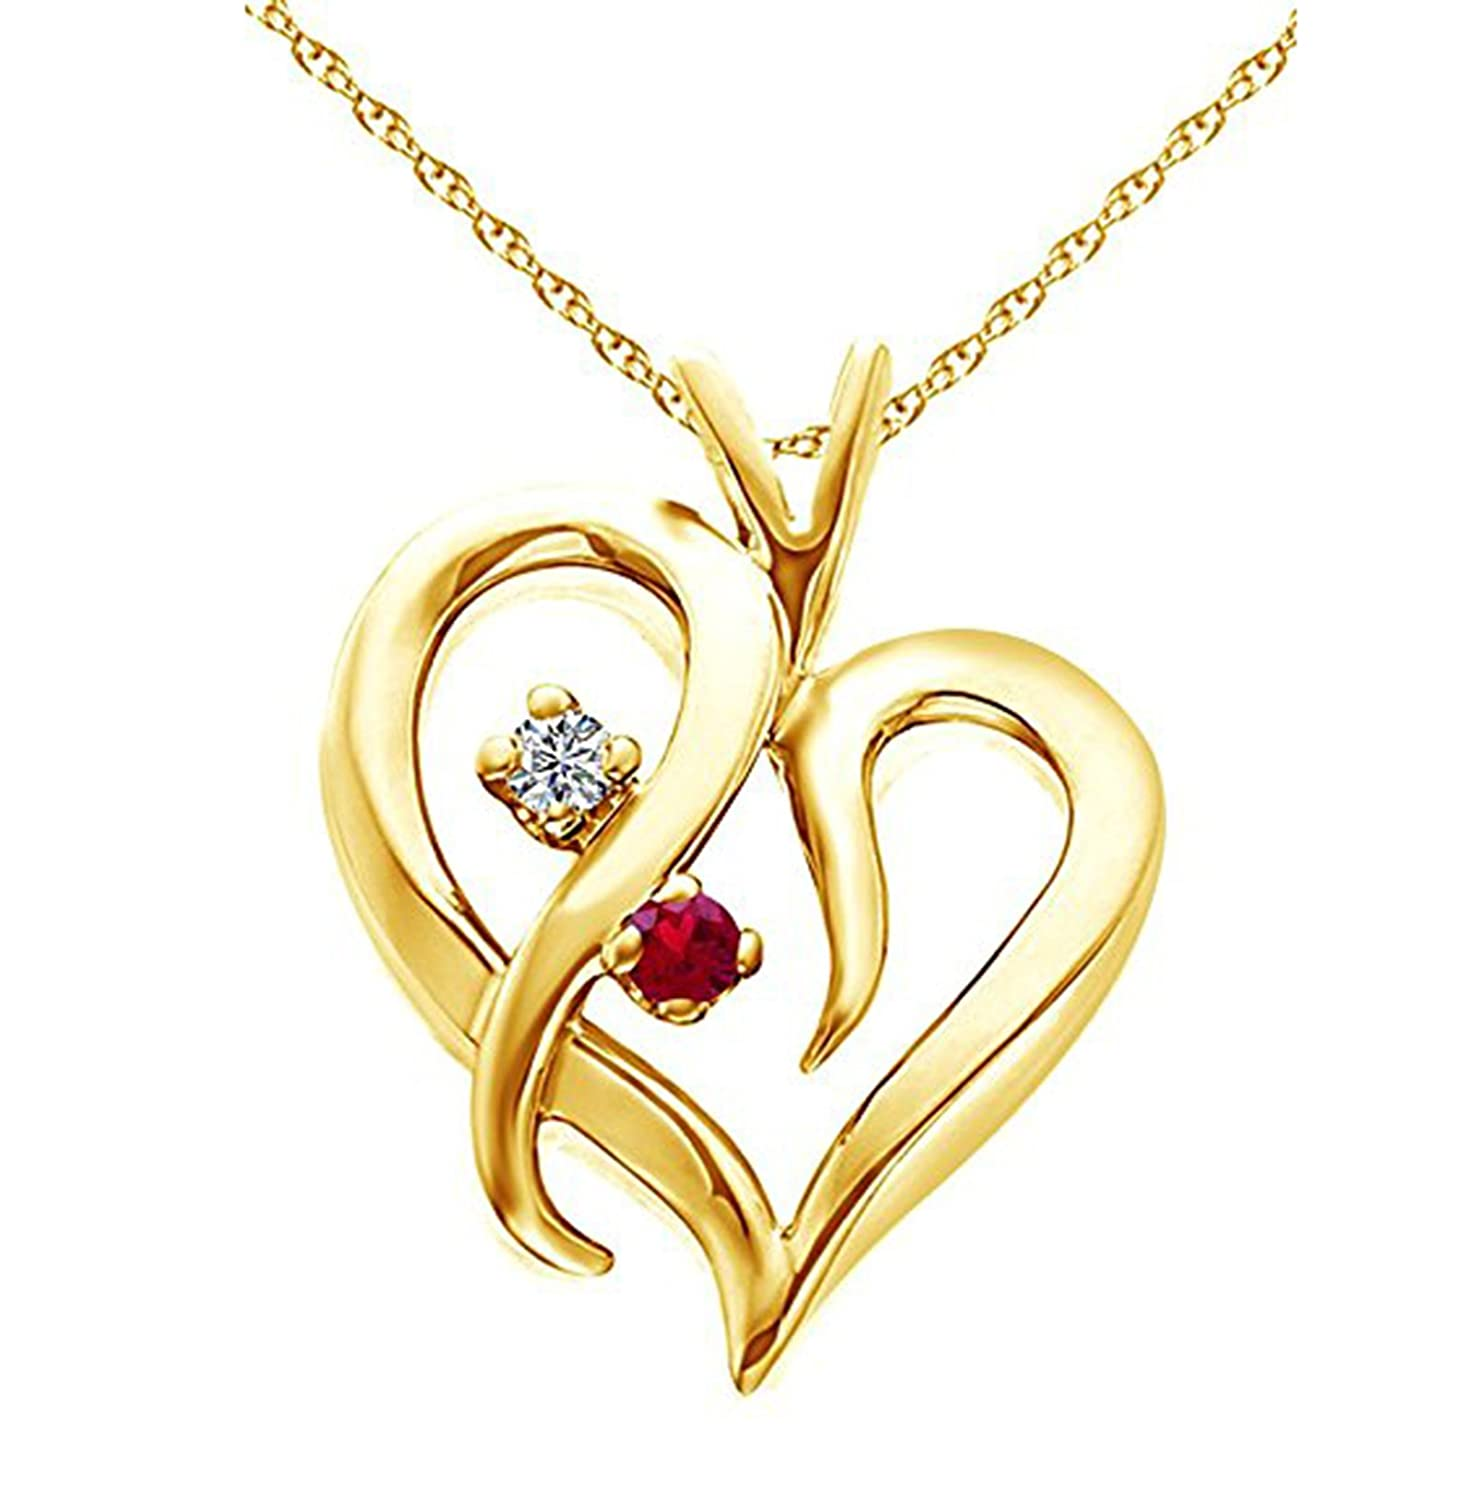 Ashley Jewels Simulated Diamond Studded Elegant Fashion Charm Heart Heart Pendant Necklace in 14K Yellow Gold Plated With Box Chain